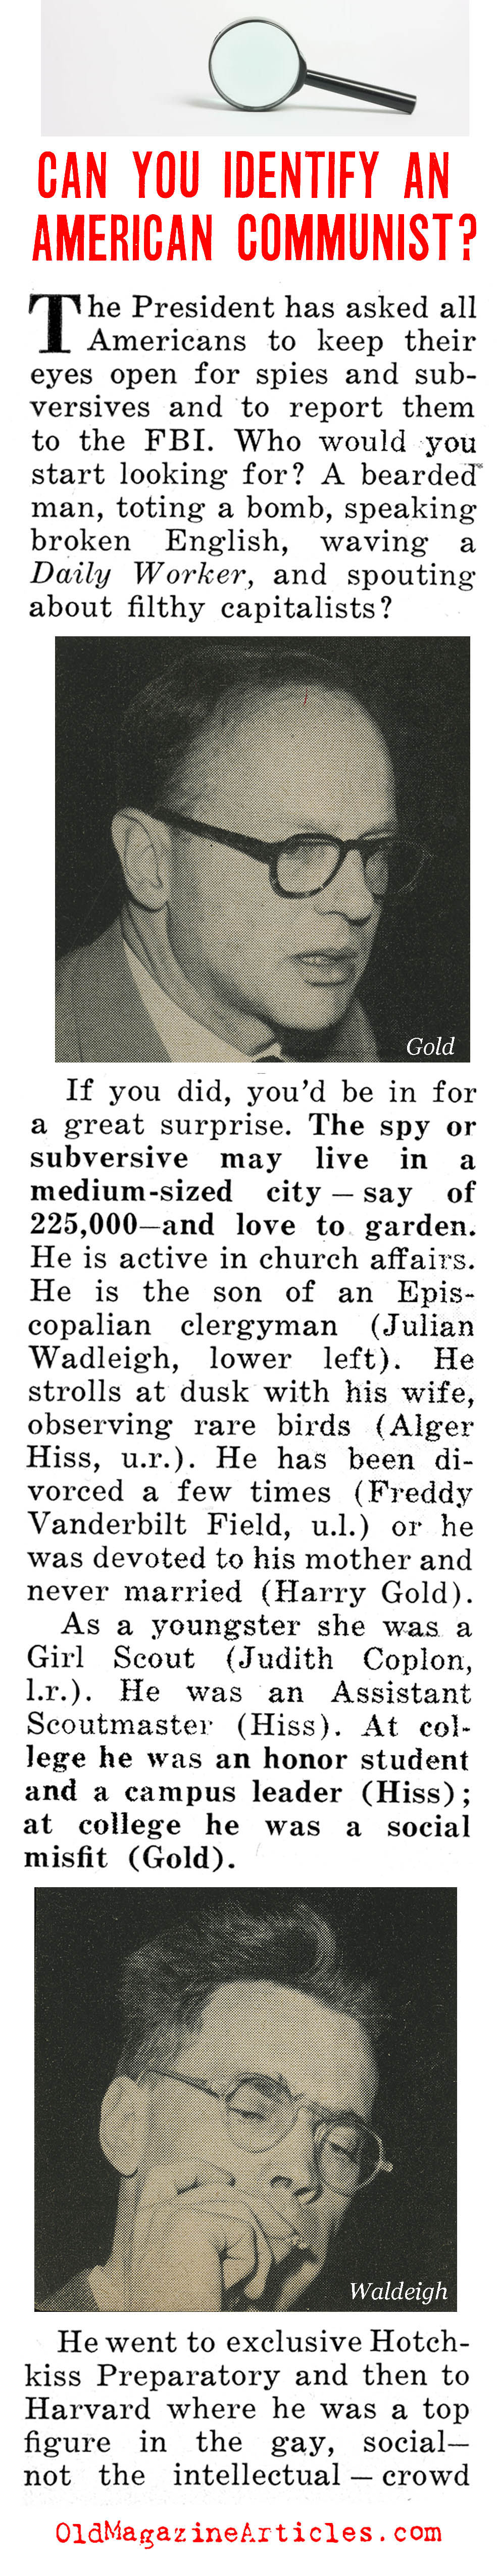 Can You Spot a Red? (People Today Magazine, 1950)